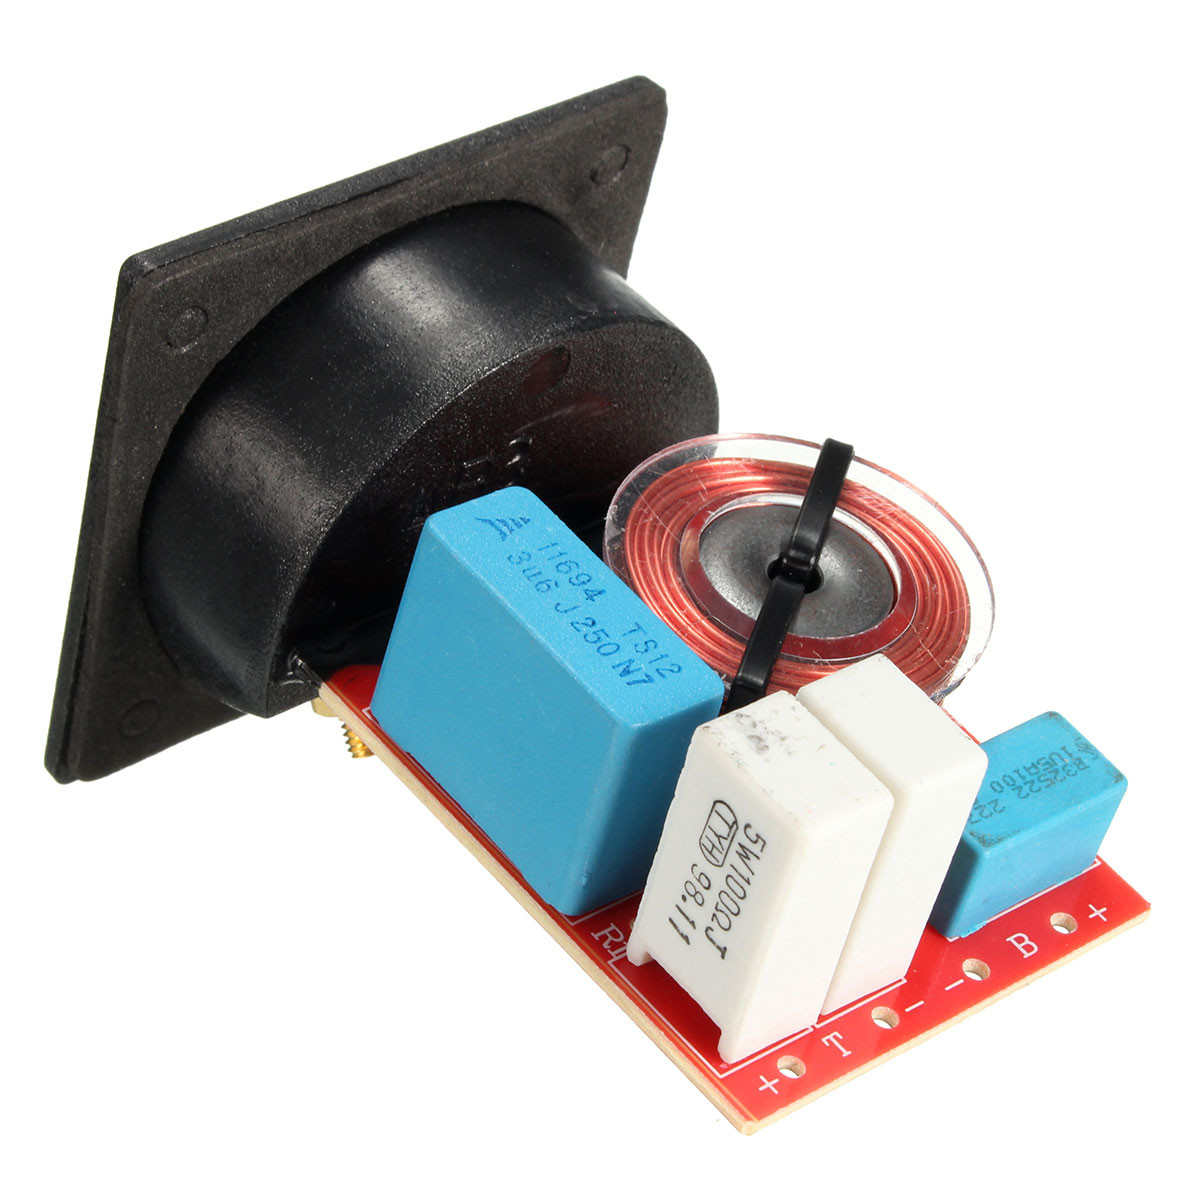 New 2 Way D222 80W Speaker Frequency Divider With Junction Box Stereo Crossover Filters 79 x 55 x 55mm